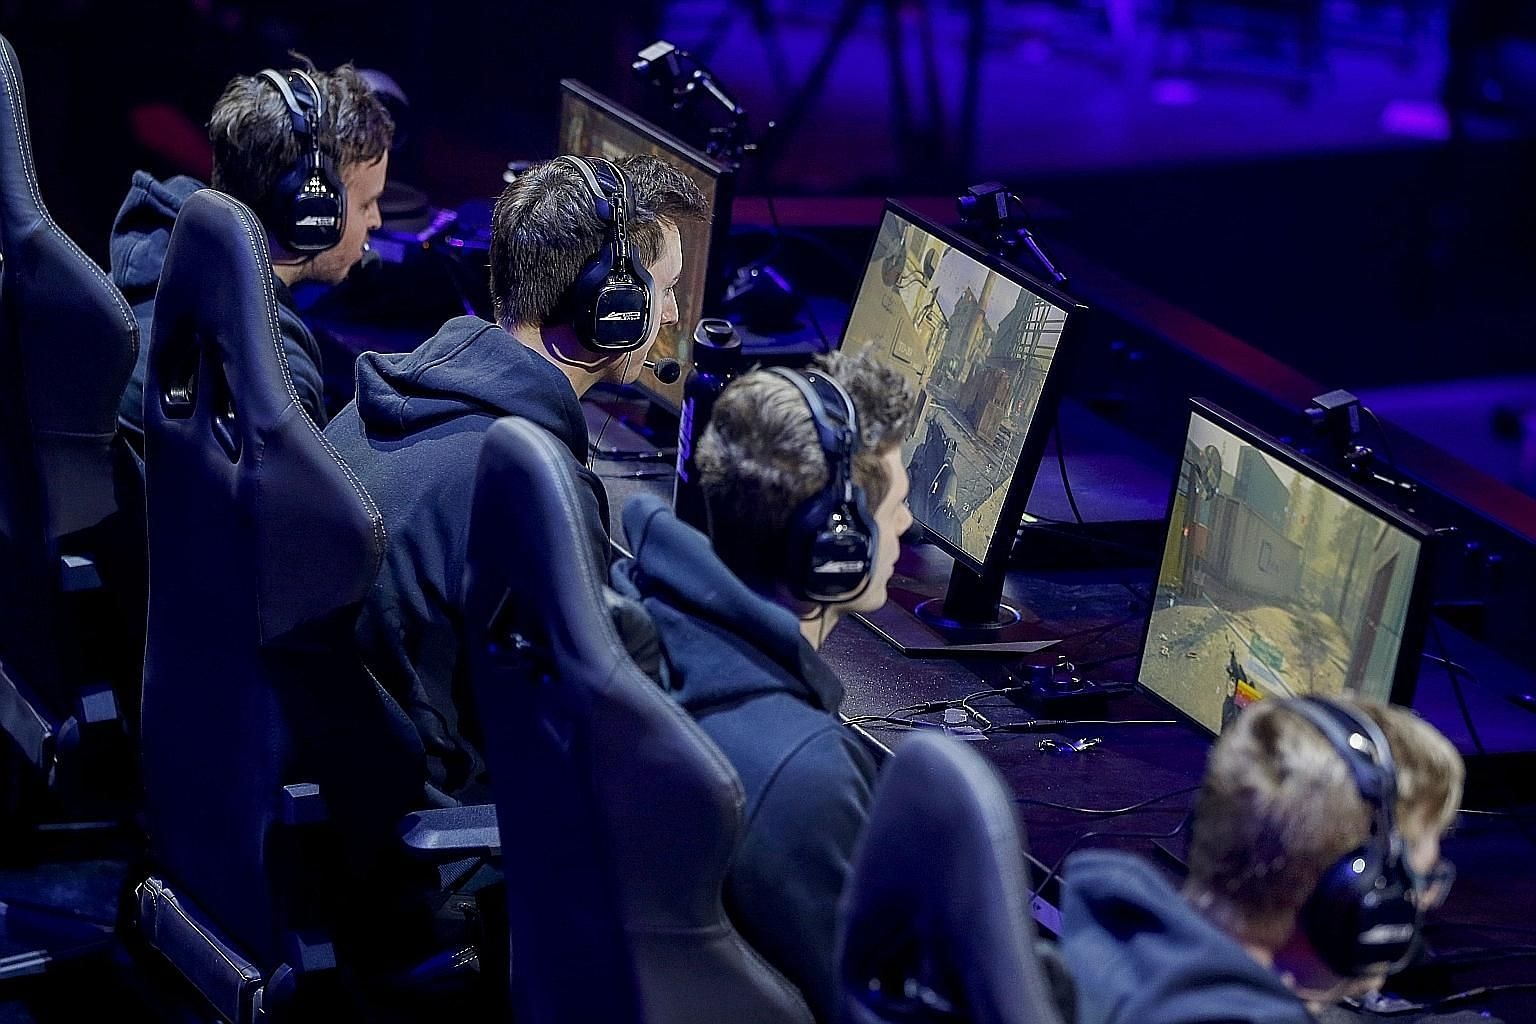 Gaming culture among the younger generations, especially with millennials and Generation Z, has grown exponentially over the past few years. About 73 per cent of the global e-sports audience consists of people between the ages of 18 and 35. The indus